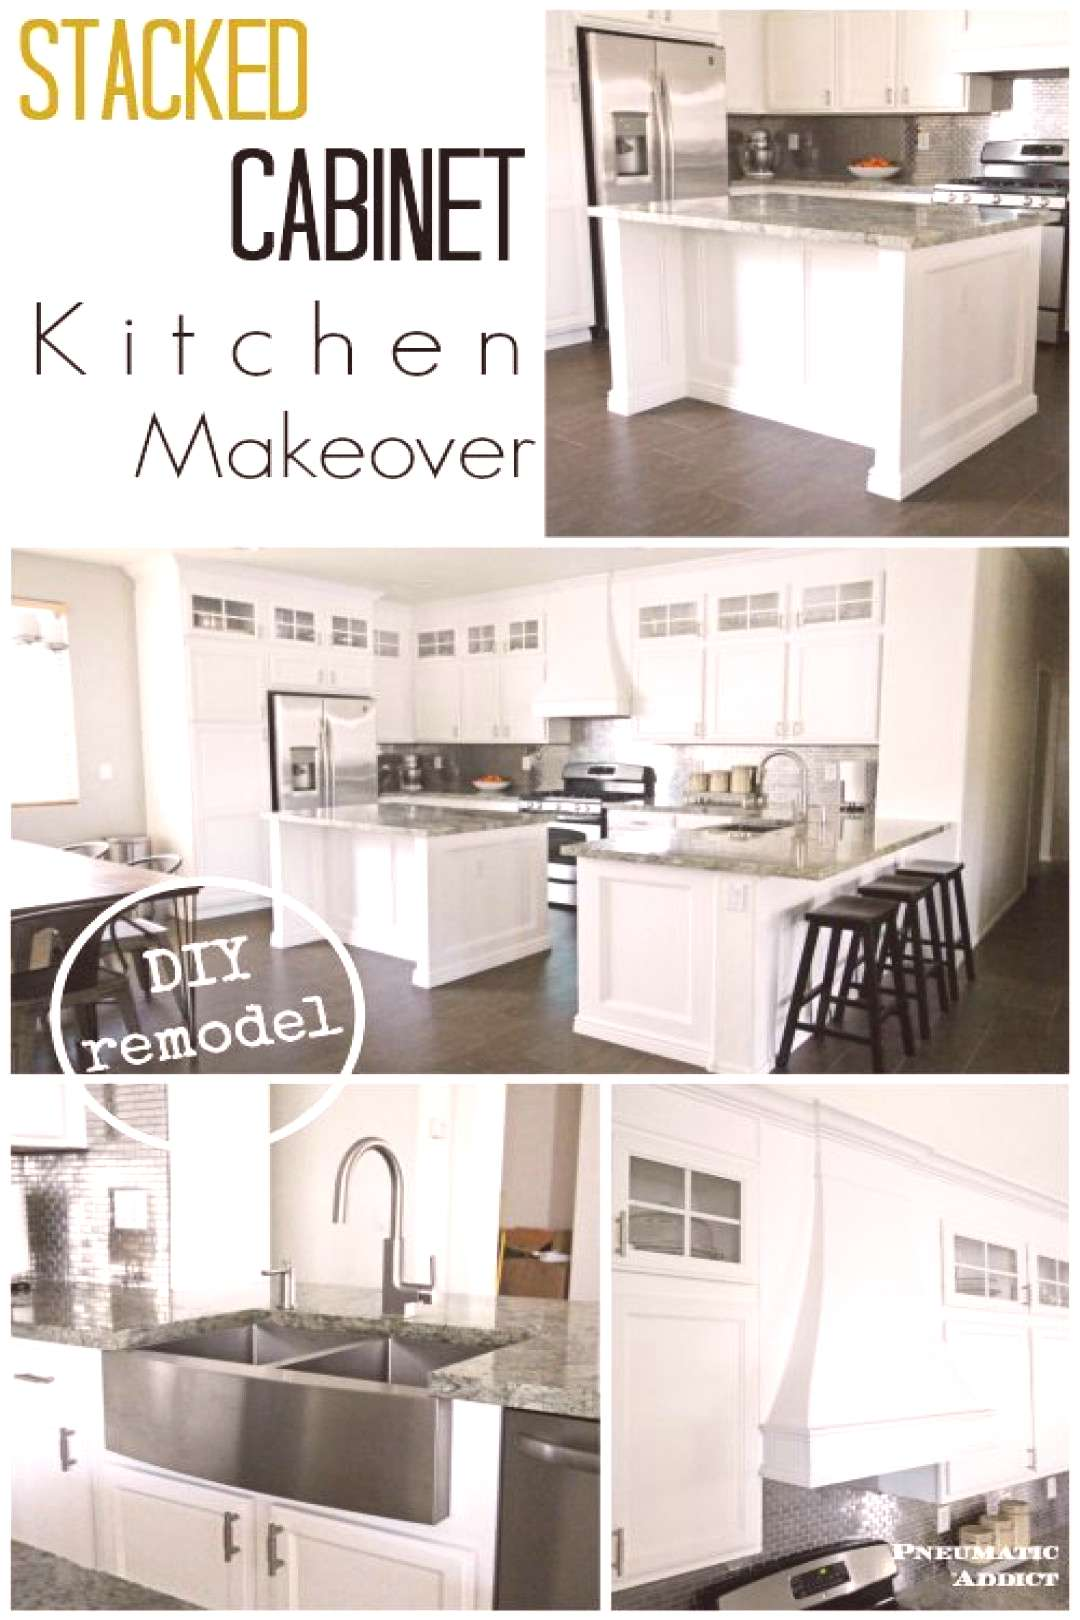 Stacked Cabinet Kitchen Makeover This amazing was done by one woman! I love the stacked and the sta